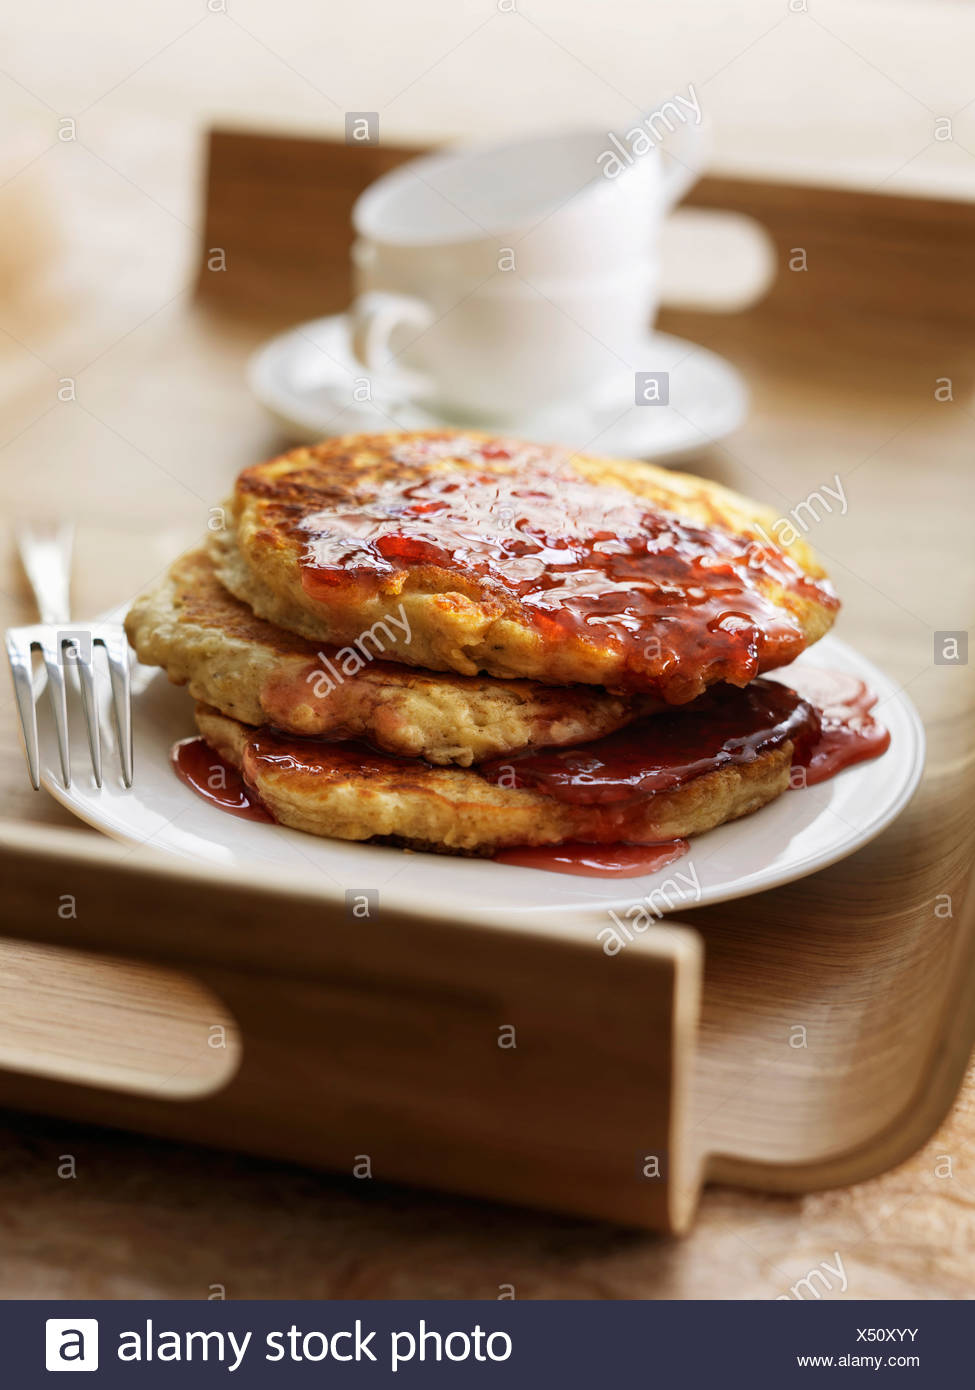 Oat flake pancakes with maple syrup - Stock Image